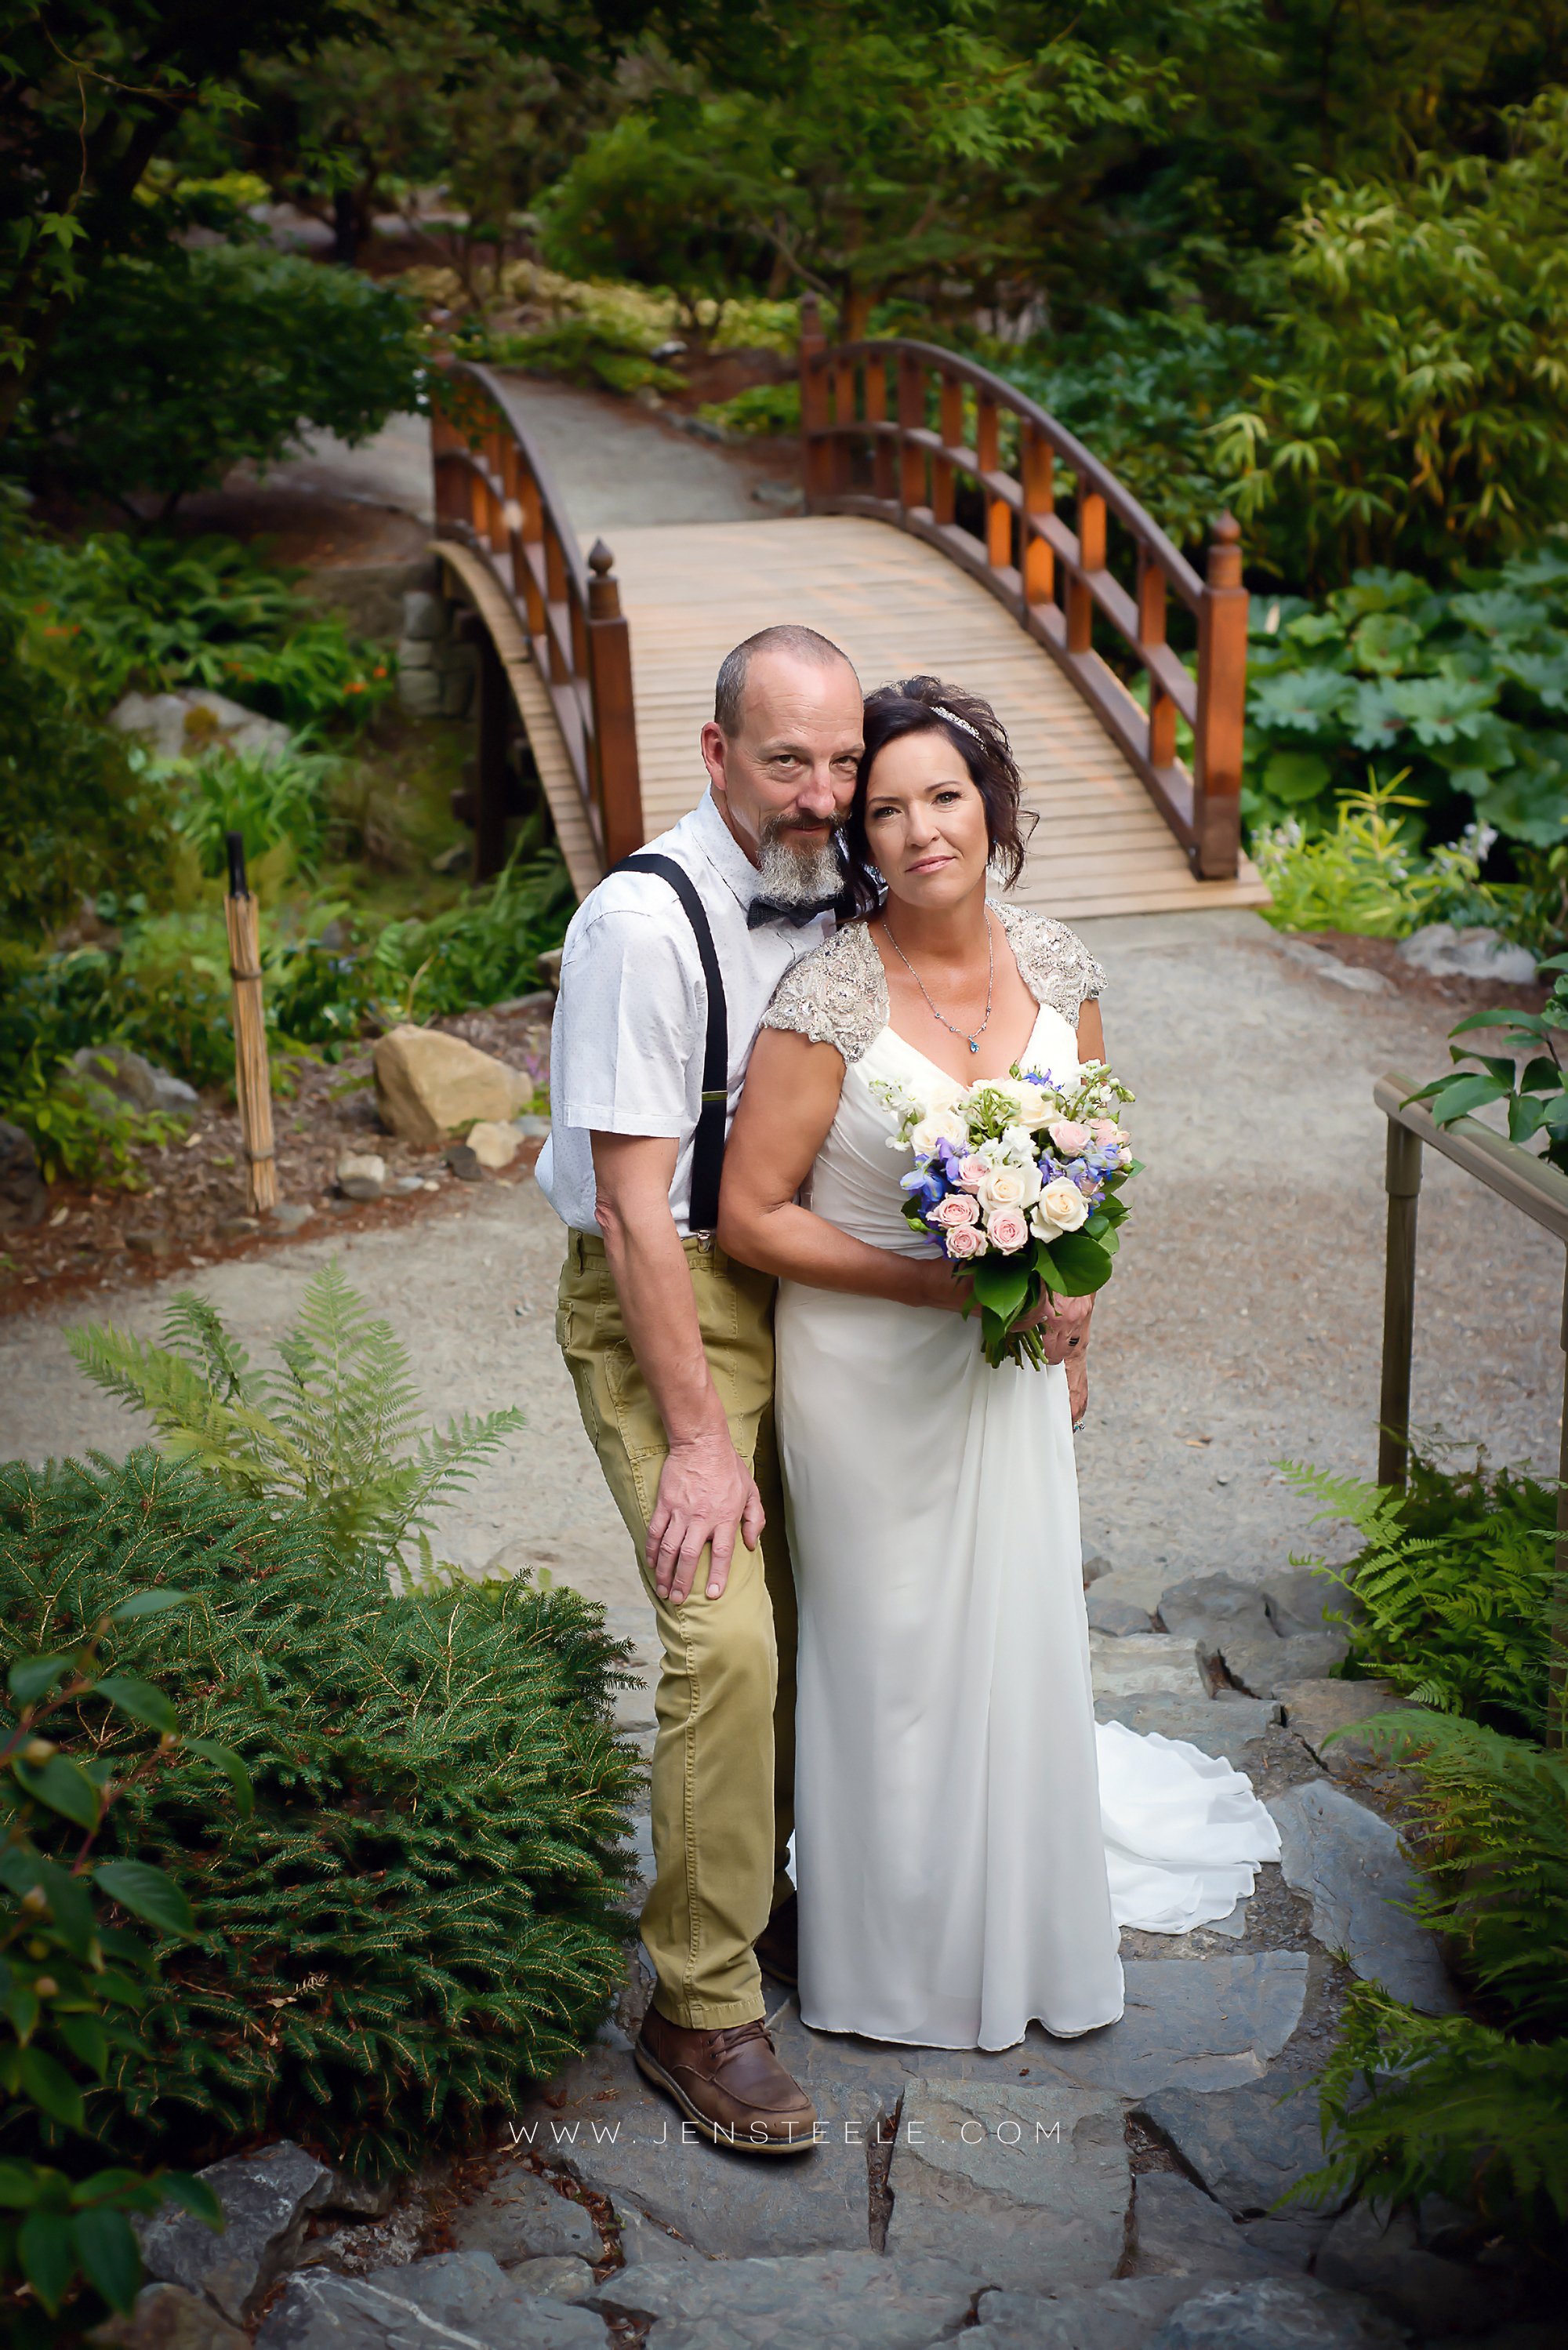 THEGARDENS-at-HCP-WEDDING-PHOTOGRAPHERS-VICTORIA-BC-JEN-STEELE-PHOTOGRAPHY